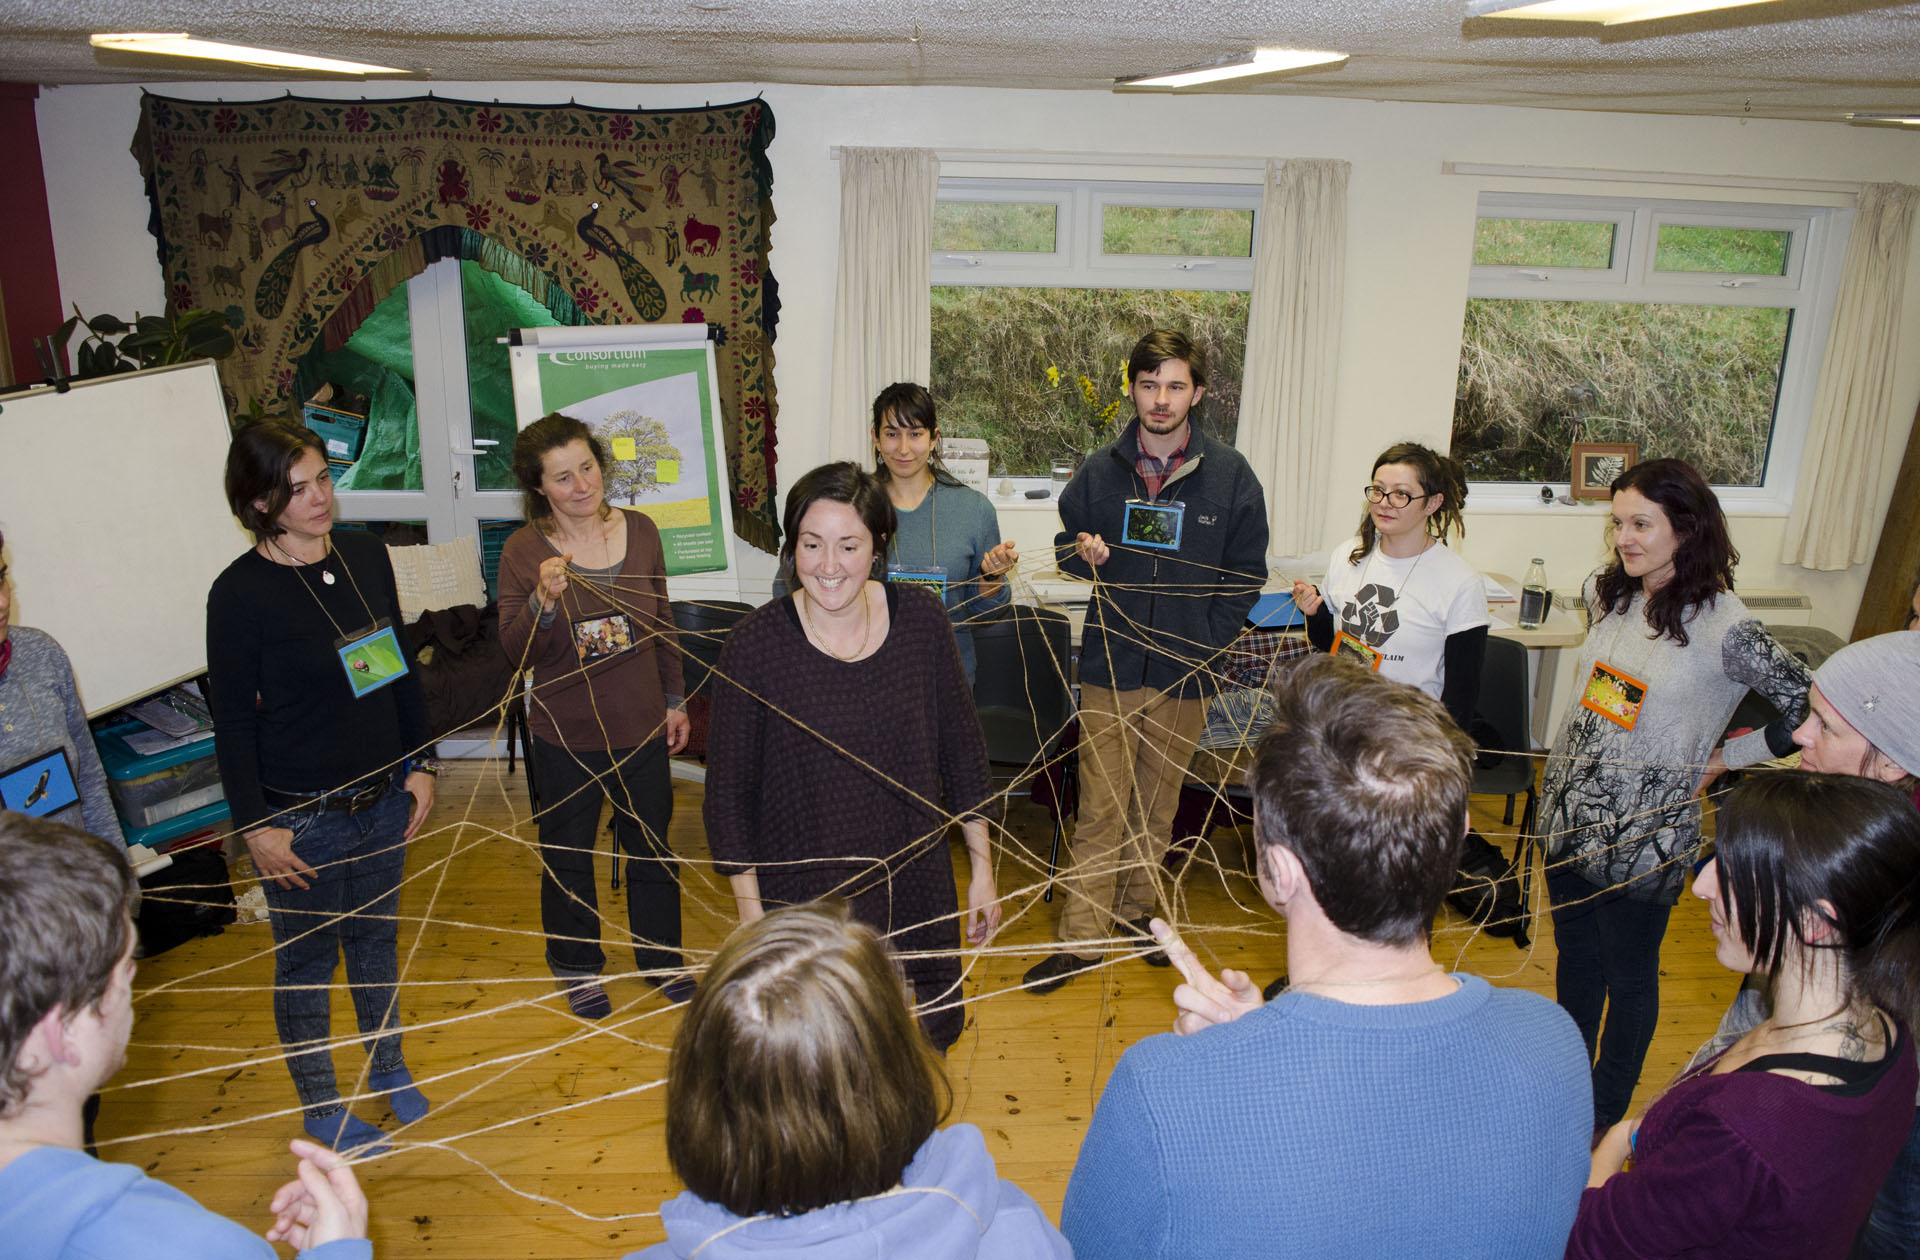 Cari web of connections